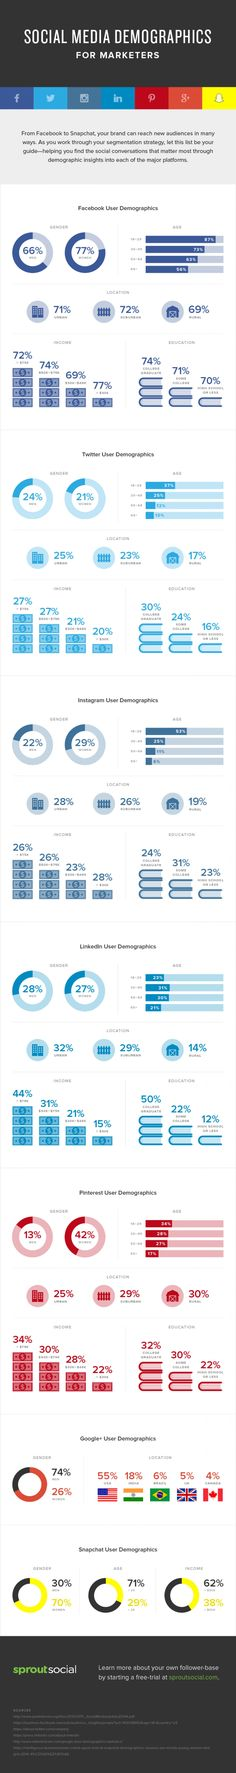 Social Media Demographics for Marketers #infographic